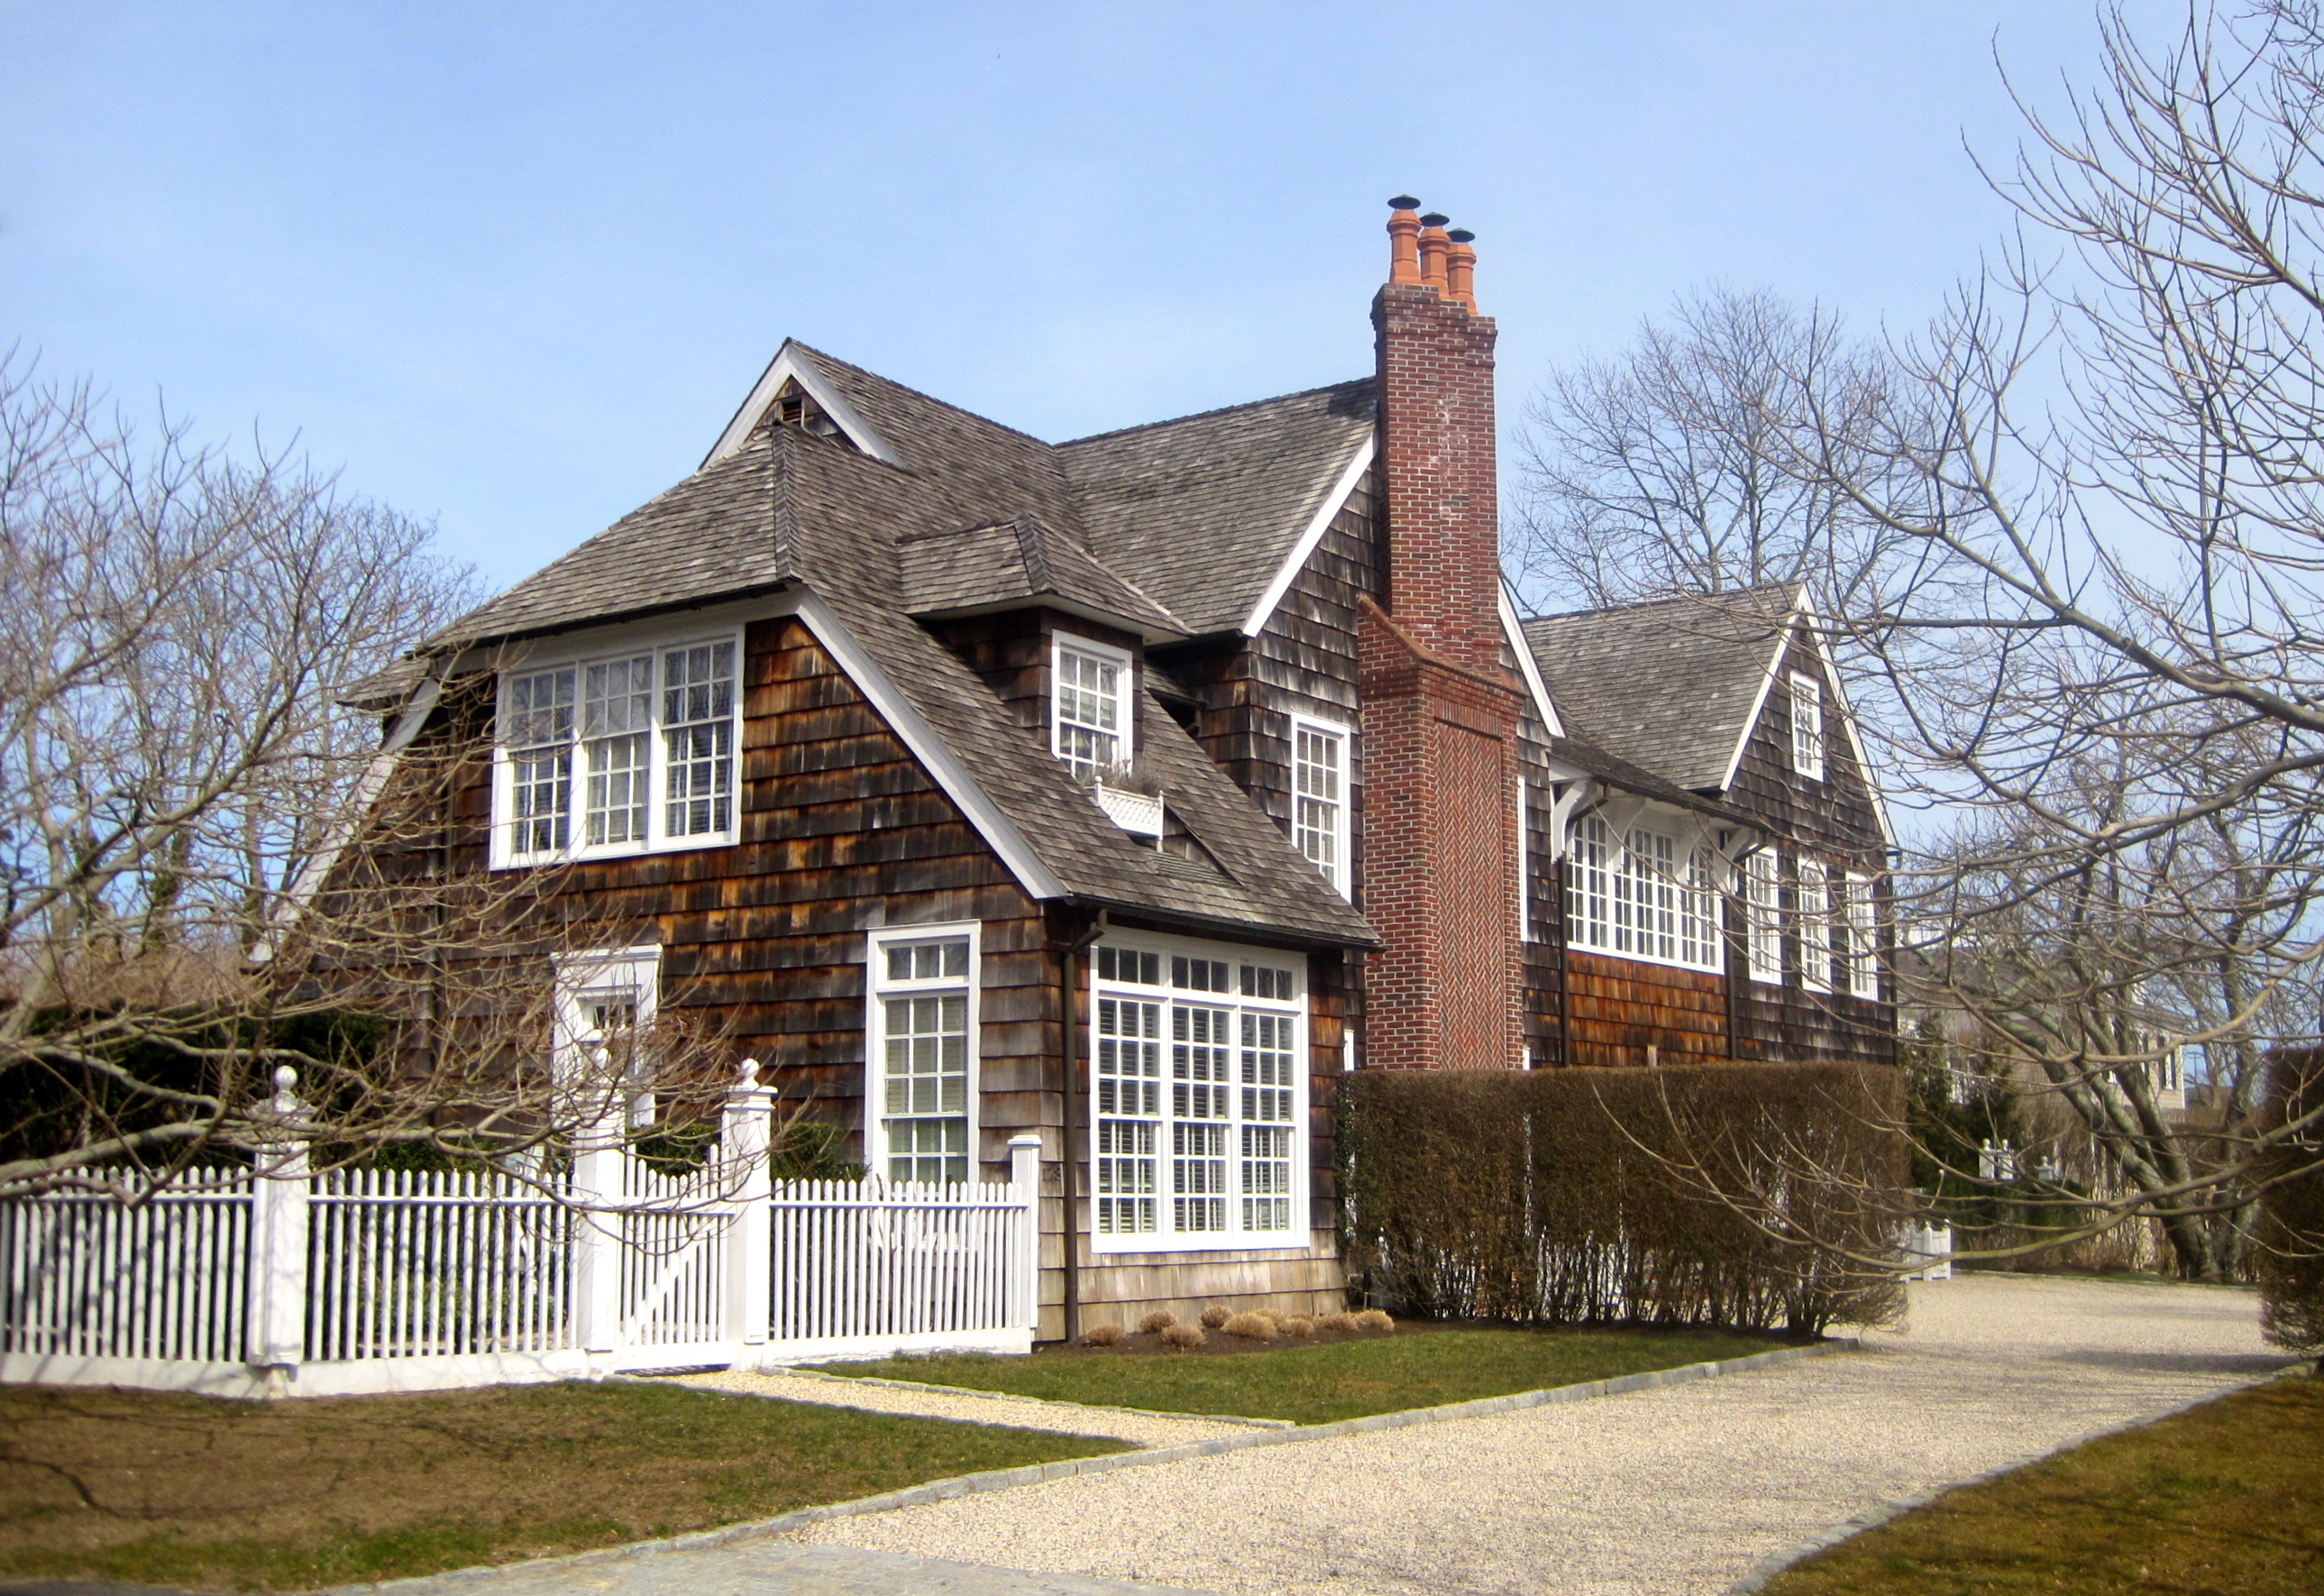 Kdhamptons photo gallery ten storybook homes of for Storybook homes prices